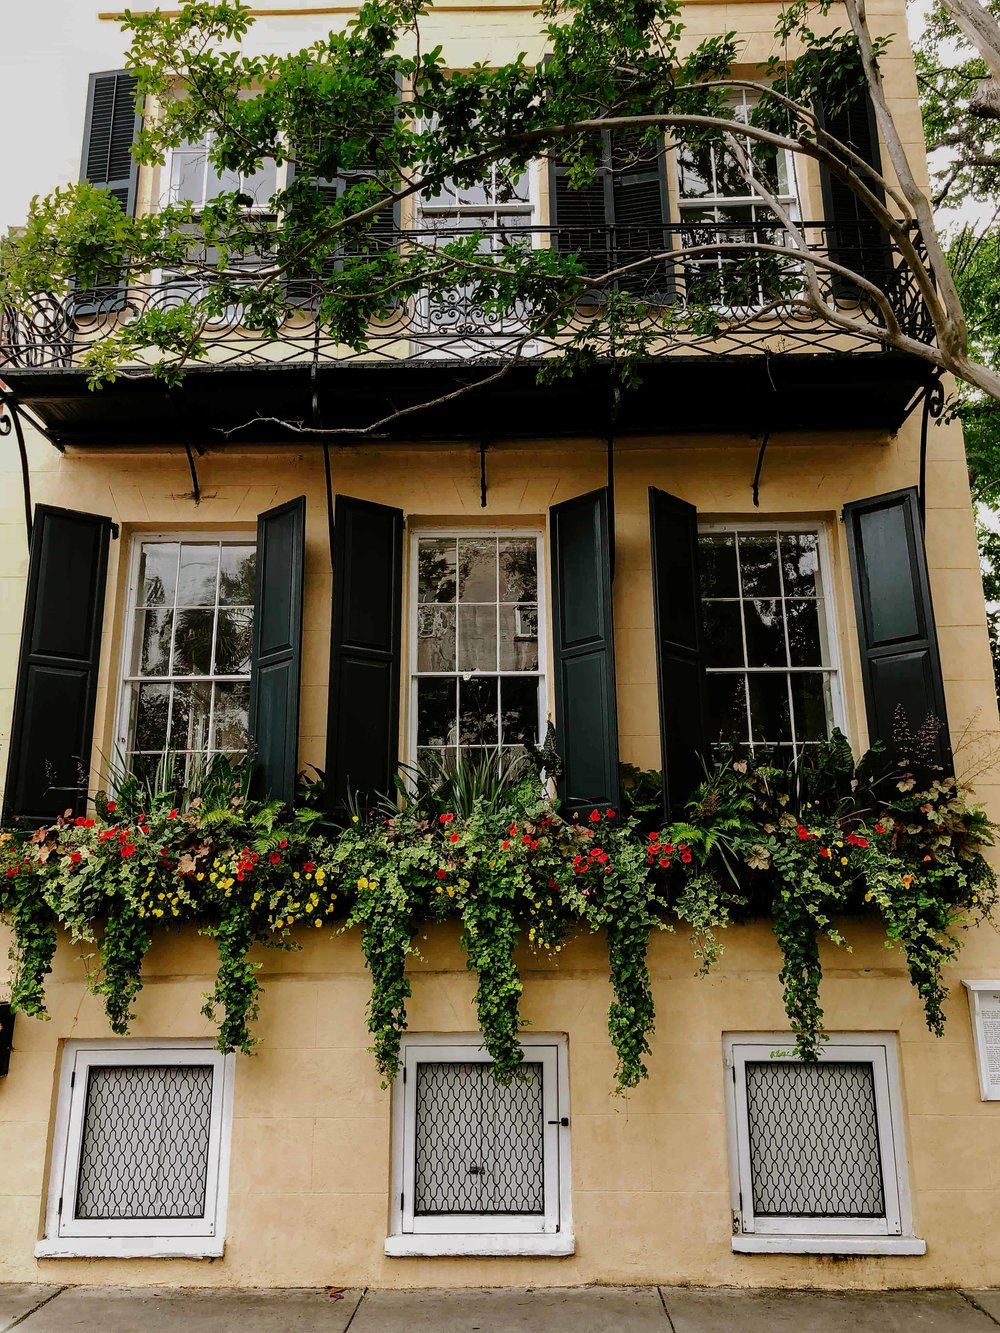 charleston-sc-city-guide-what-to-do-and-see-24.jpg